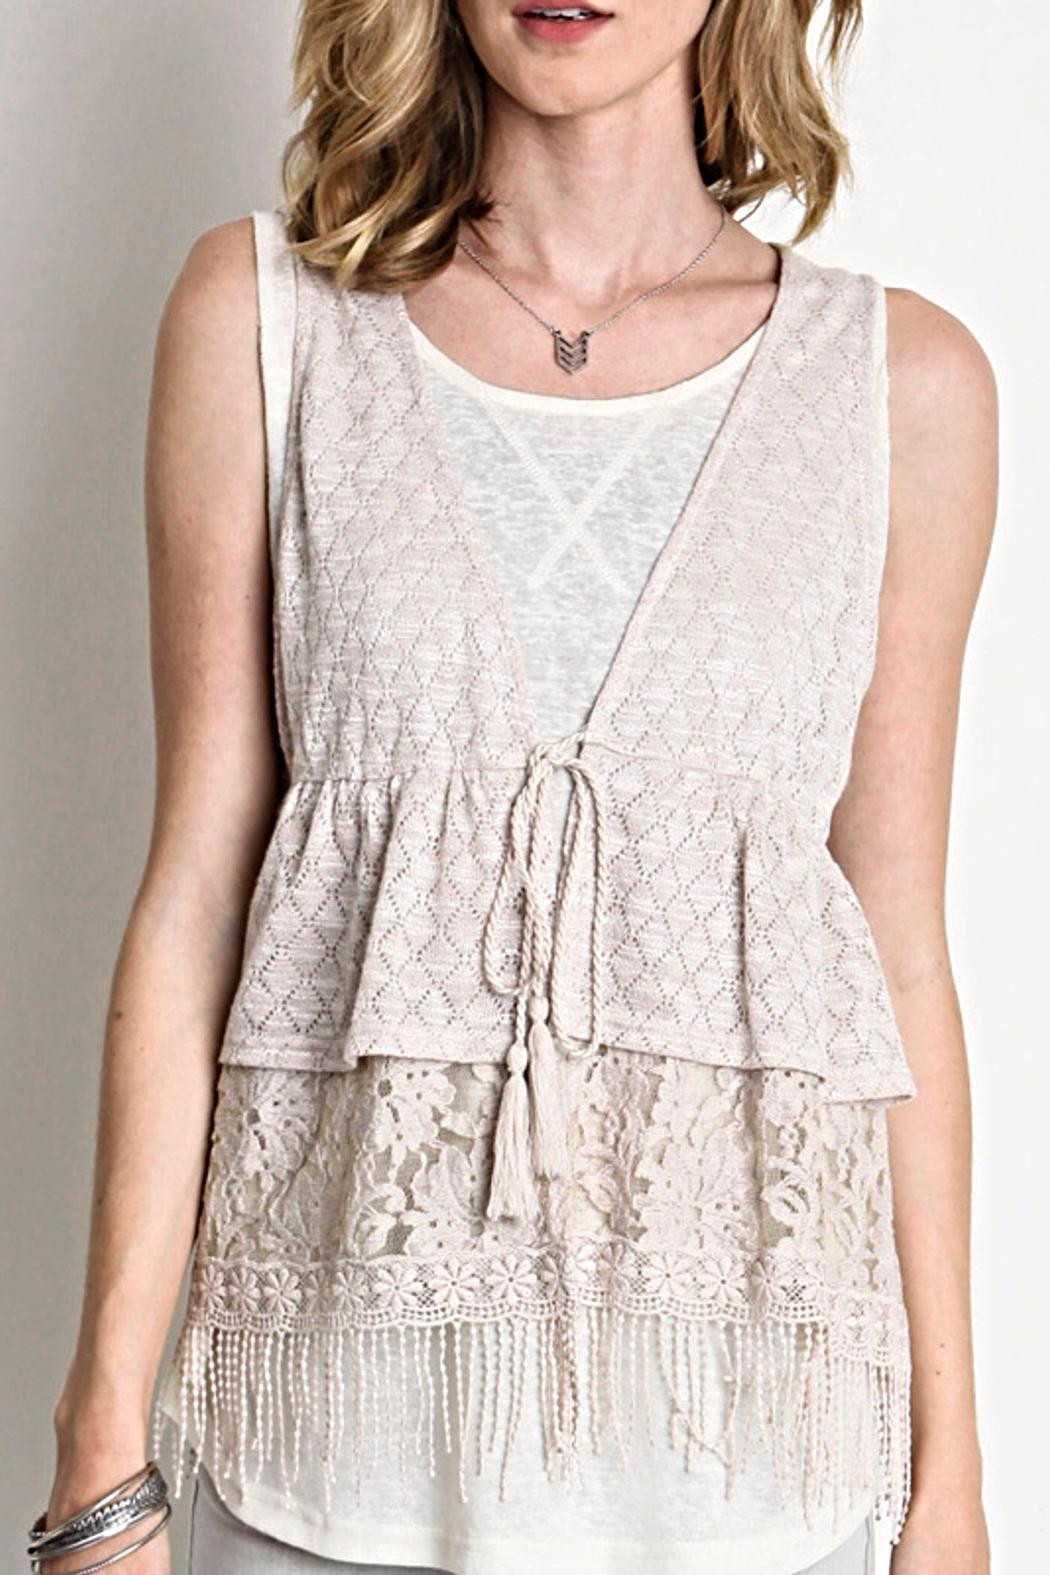 Fresh Umgee Usa Crochet Lace Vest From Idaho by Nostalgic Crochet Lace Vest Of Incredible 40 Images Crochet Lace Vest